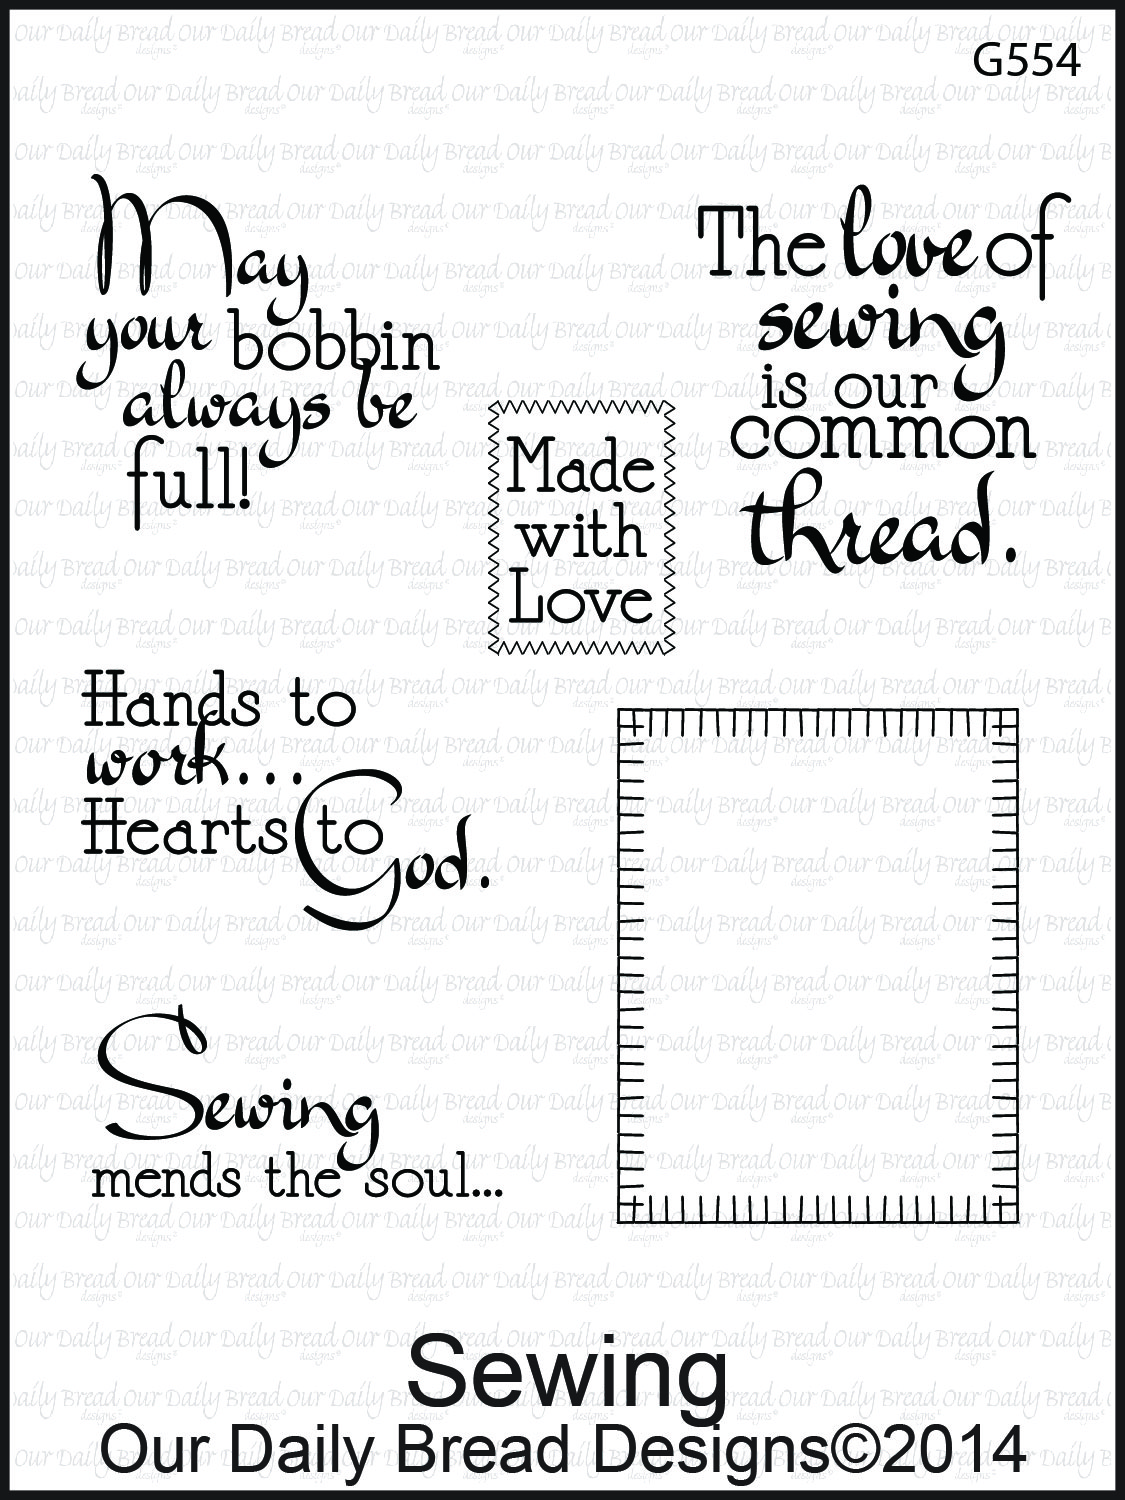 Stamps - Our Daily Bread Designs Sewing